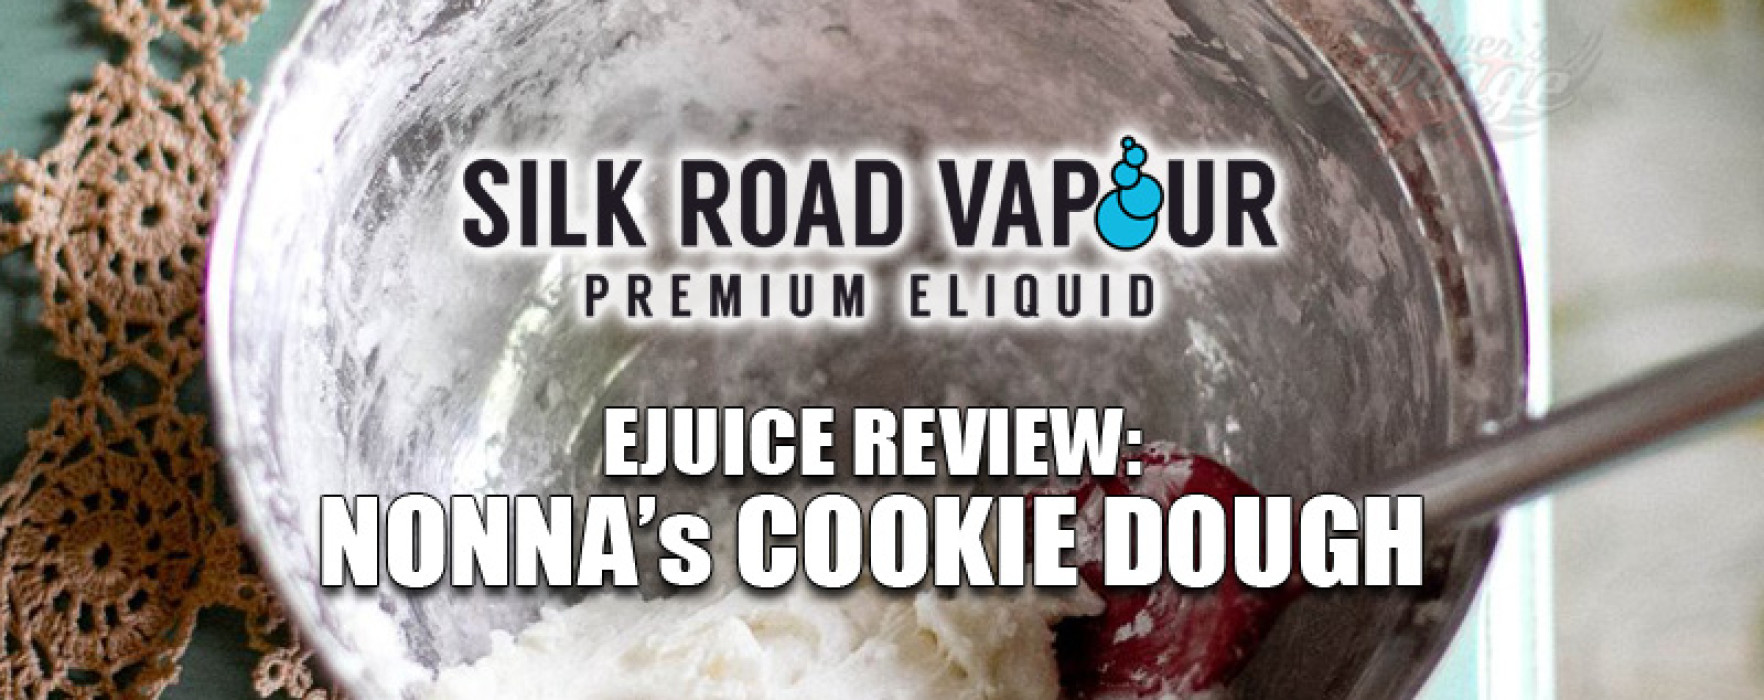 eJuice Review: Nonna's Cookie Dough by Silk Road Vapour